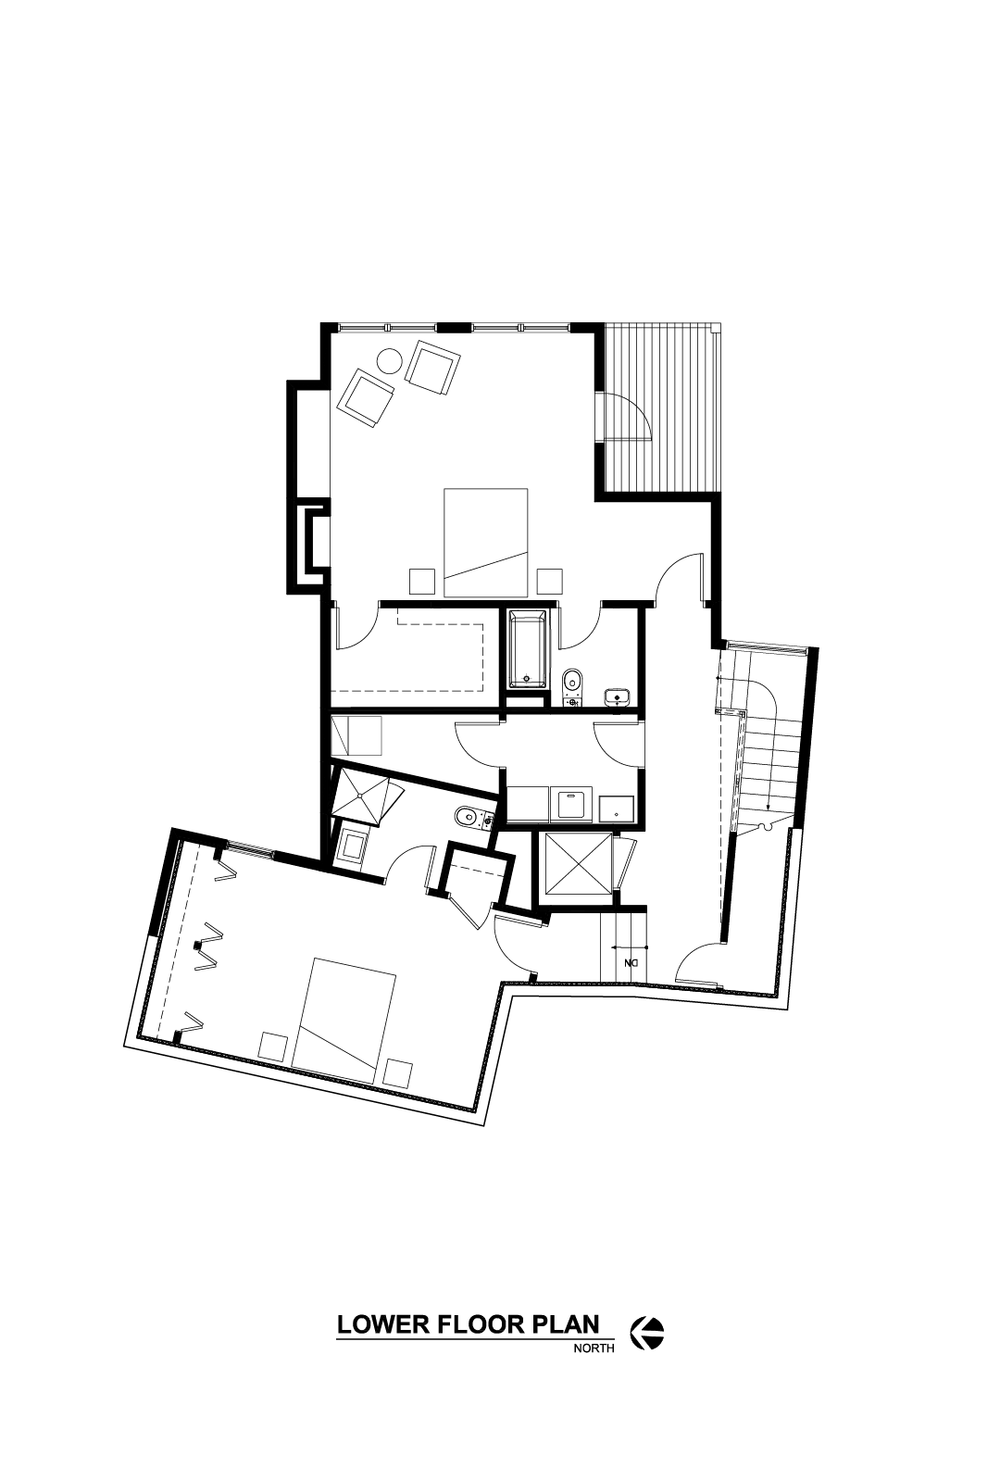 A3.1 LOWER FLOOR PLAN H5-01.png